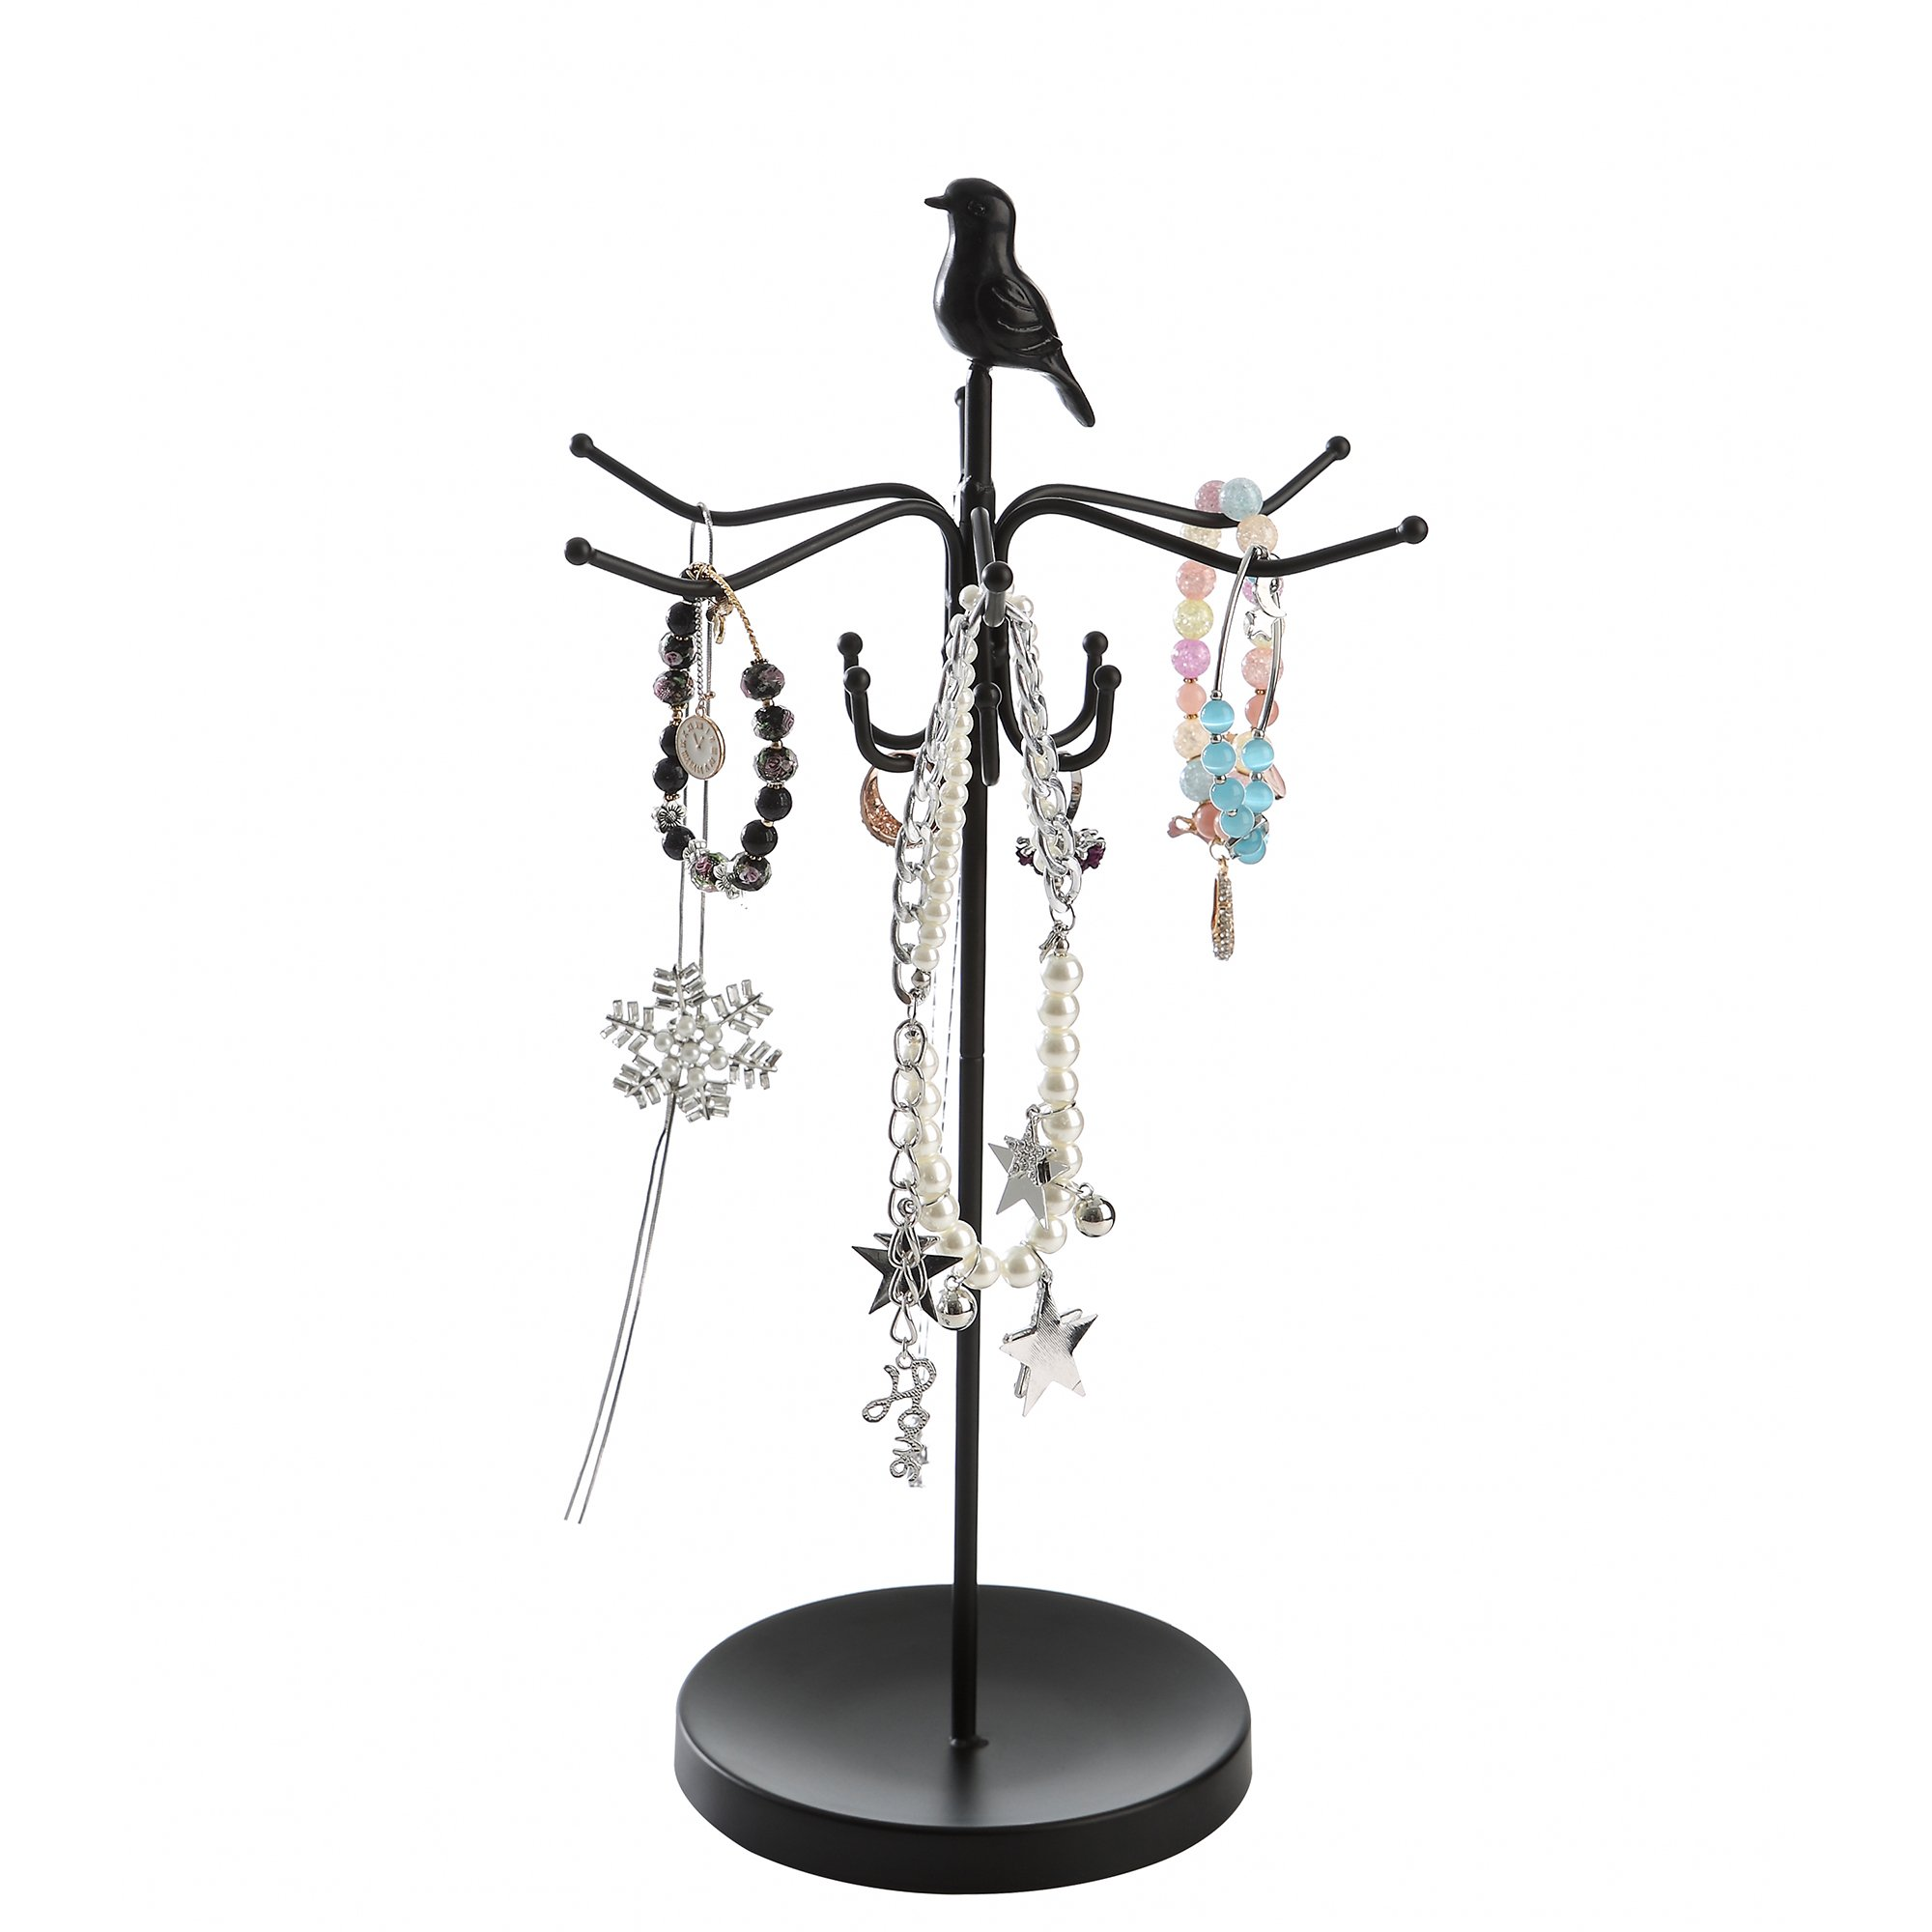 Giftway Black Rotating Necklace Holder, Bracelet Stand Jewelry Tree Organizer with Bird on The Top